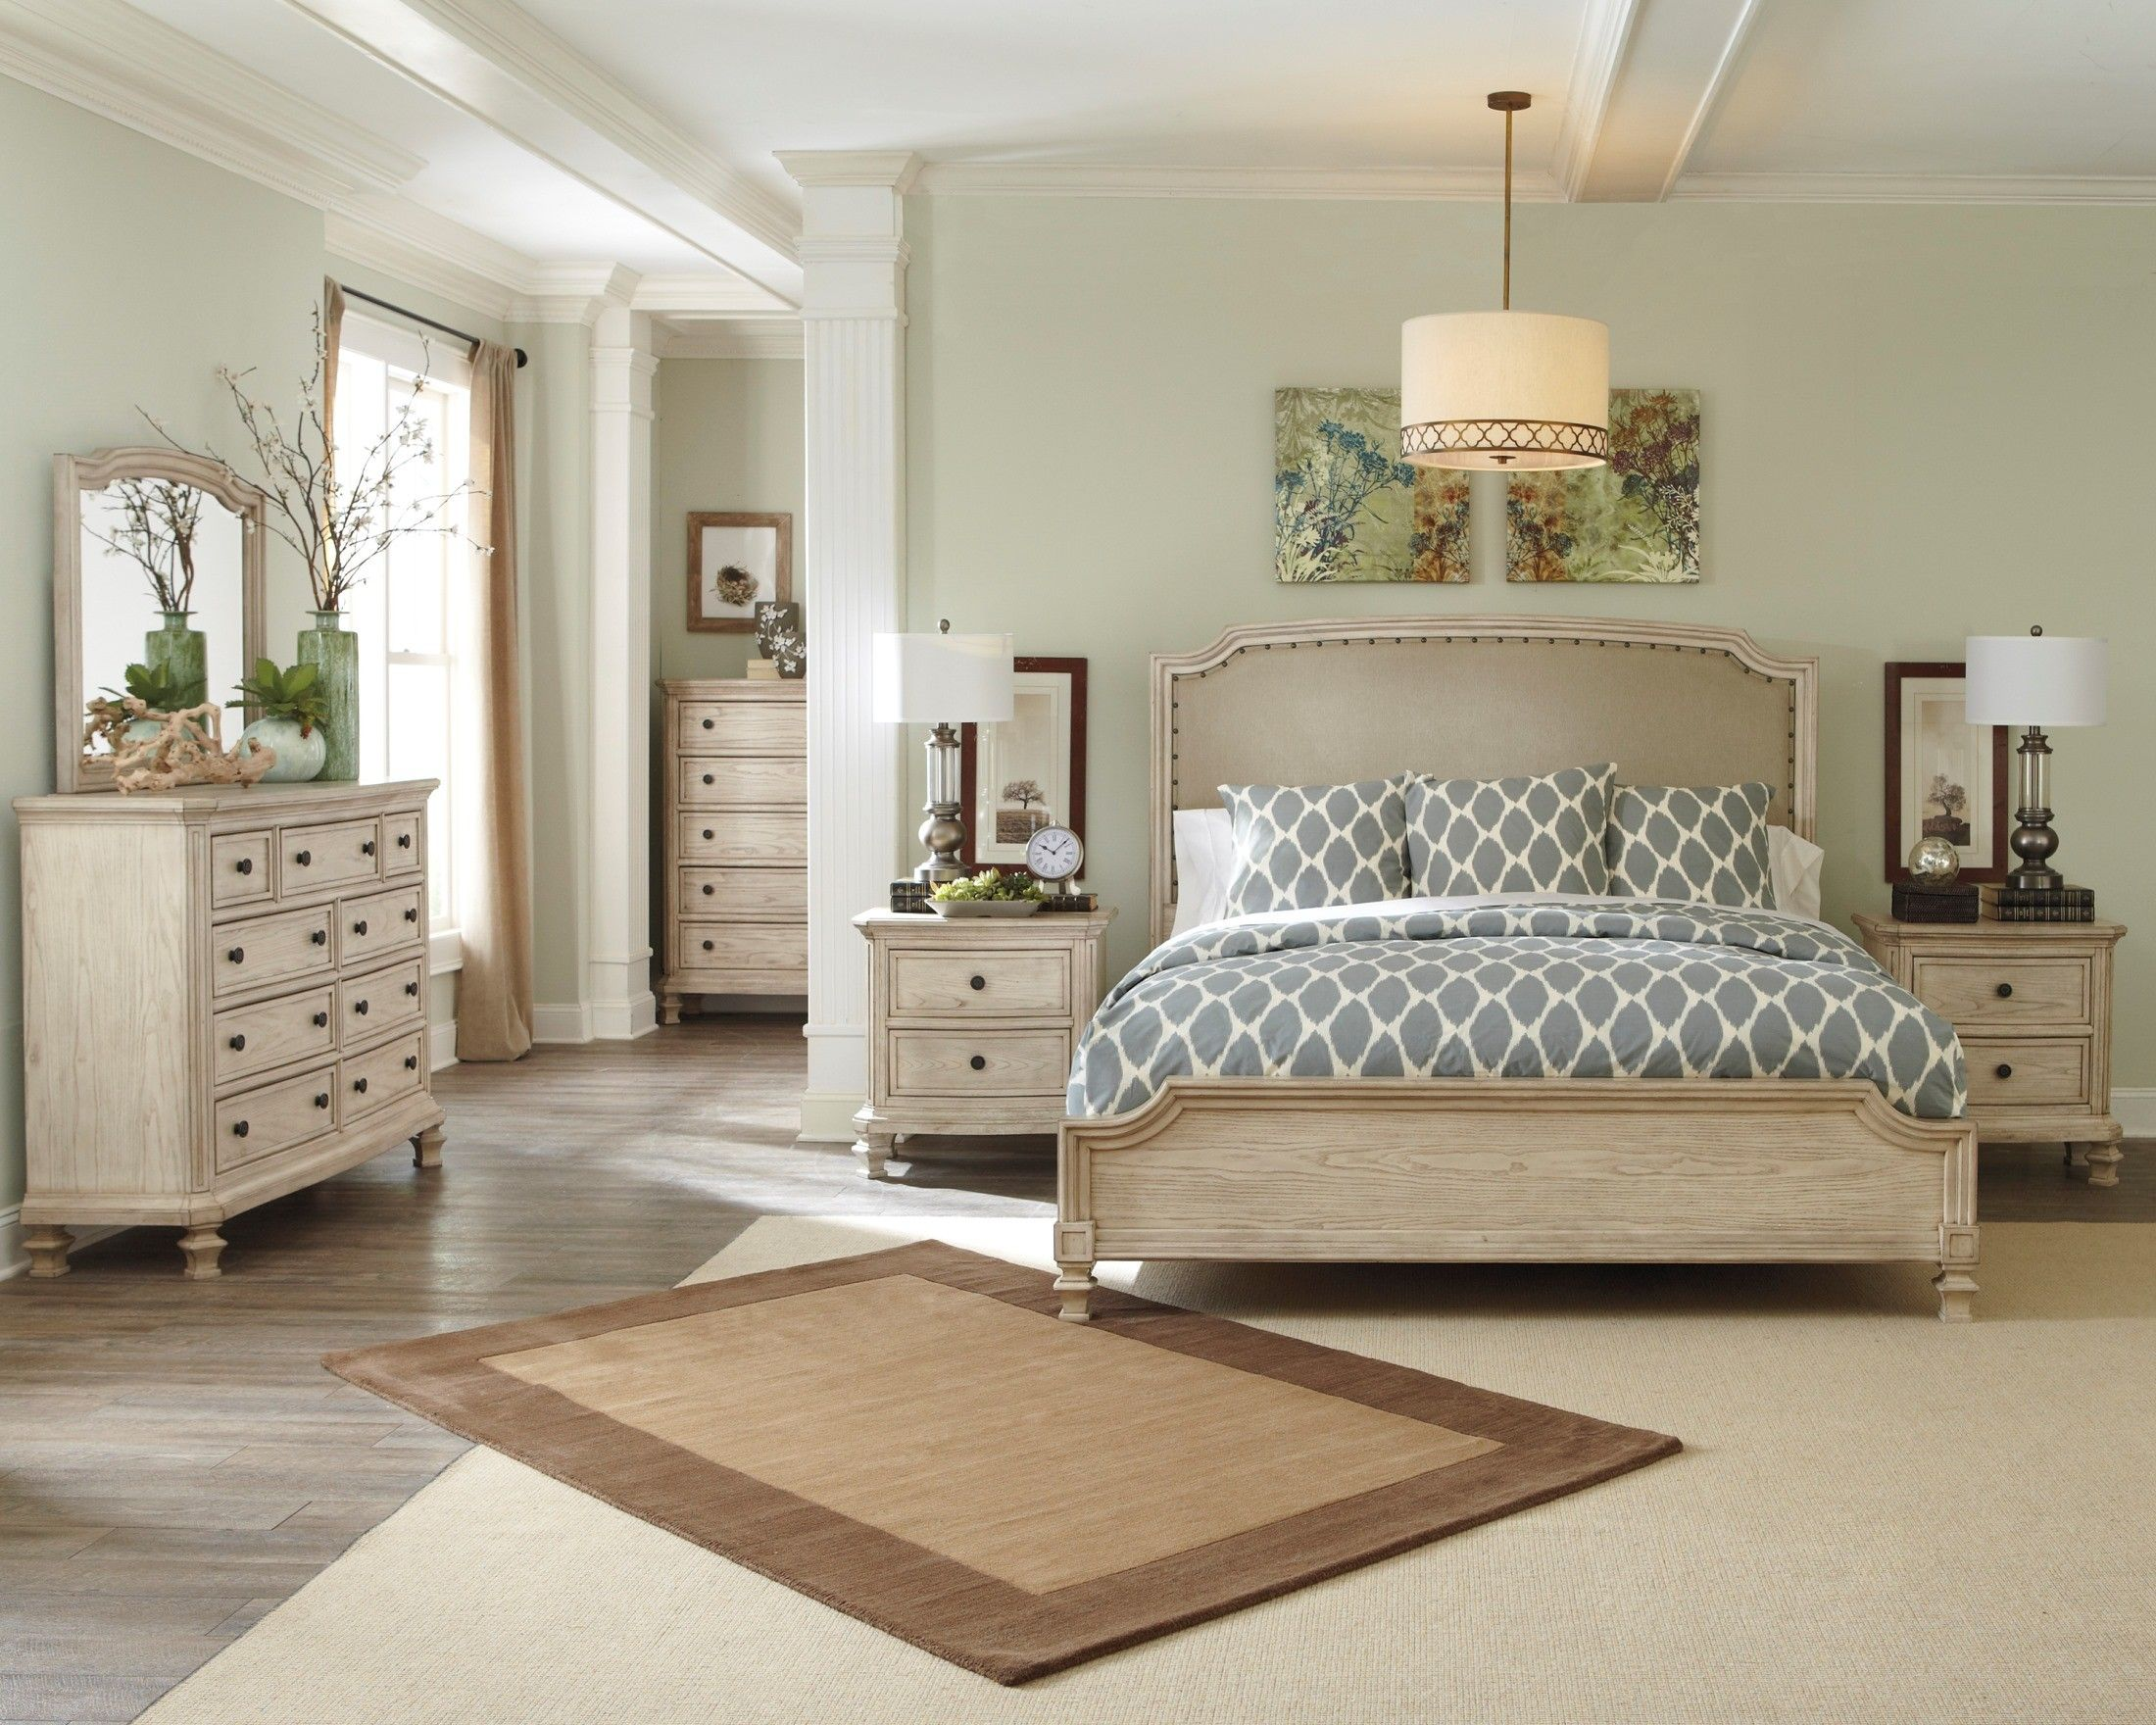 demarlos ashley furniture also comes foyer furniture bedroom furniture setsrustic